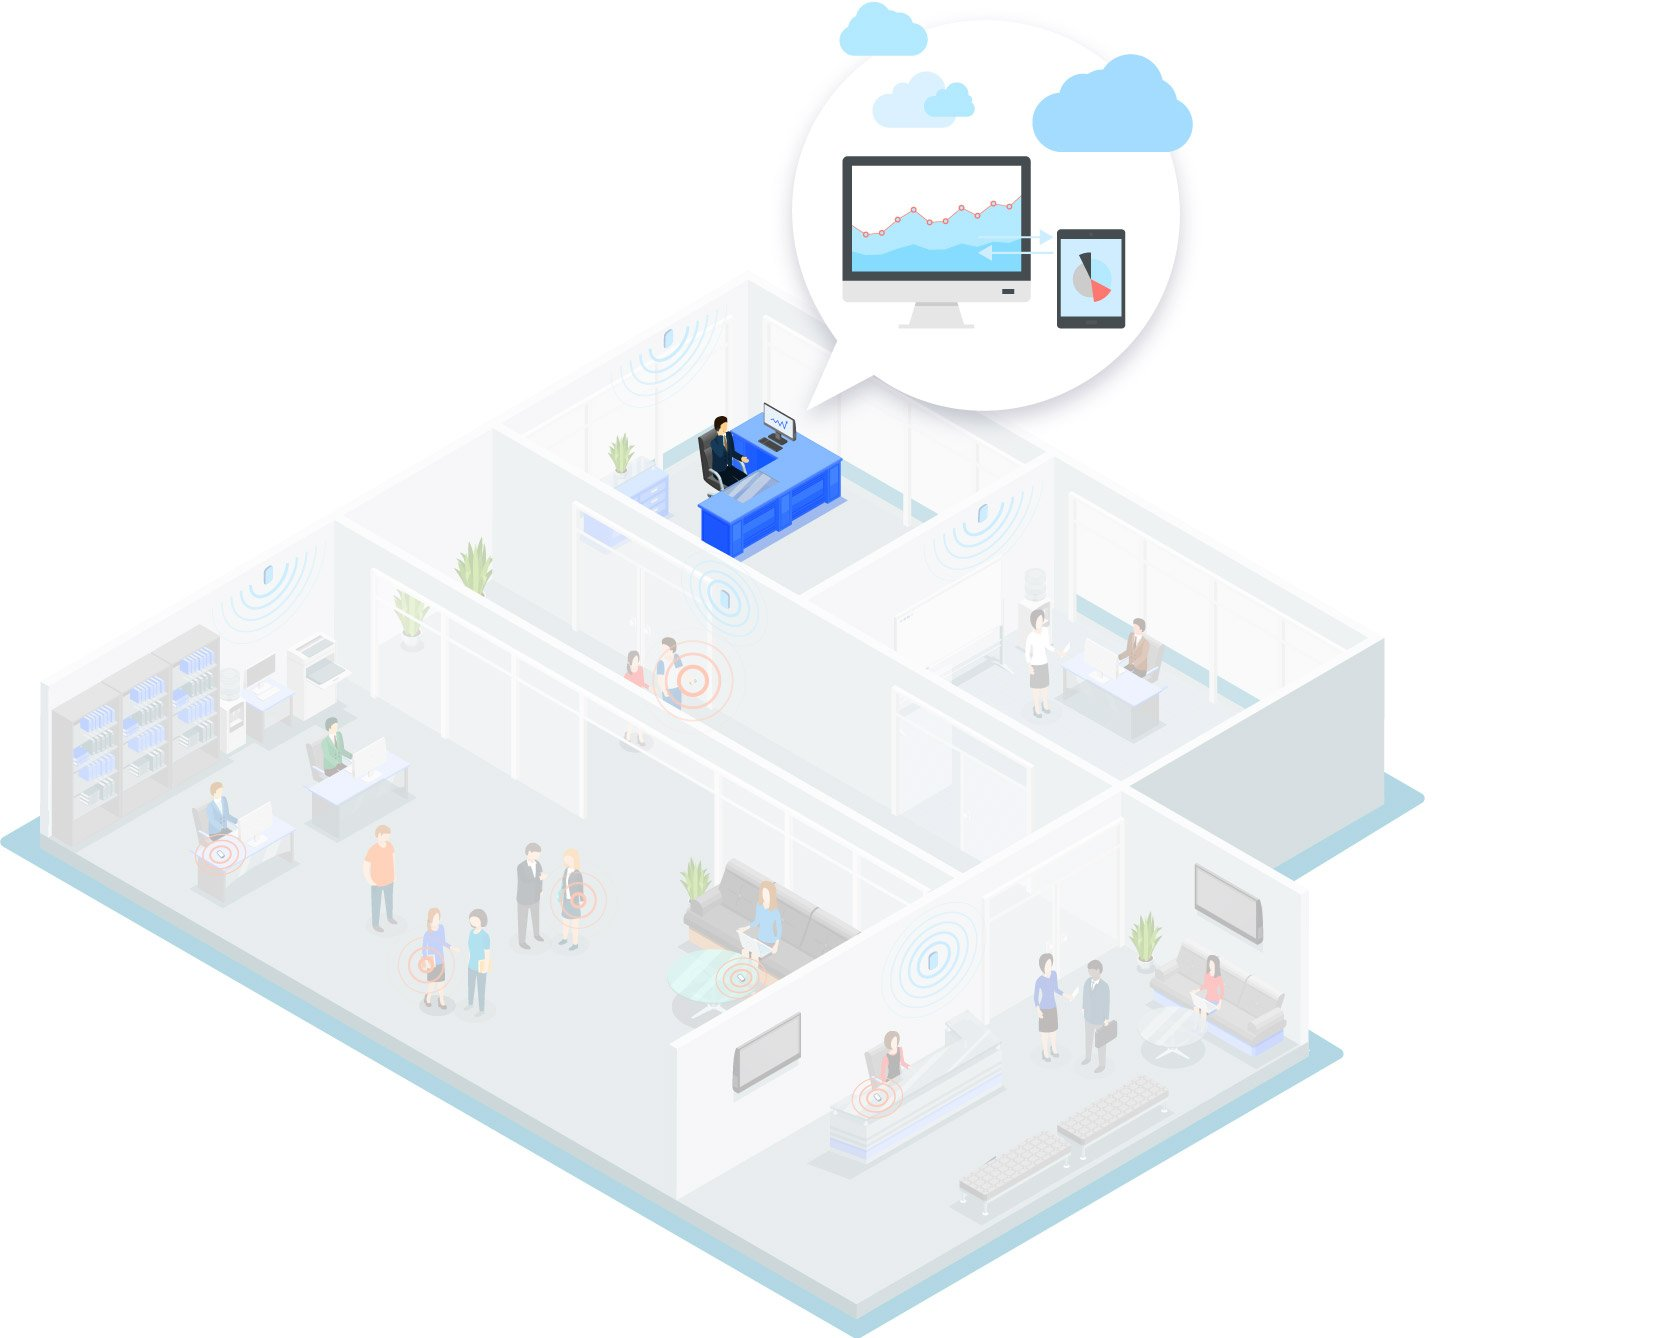 The all-in-one indoor location platform